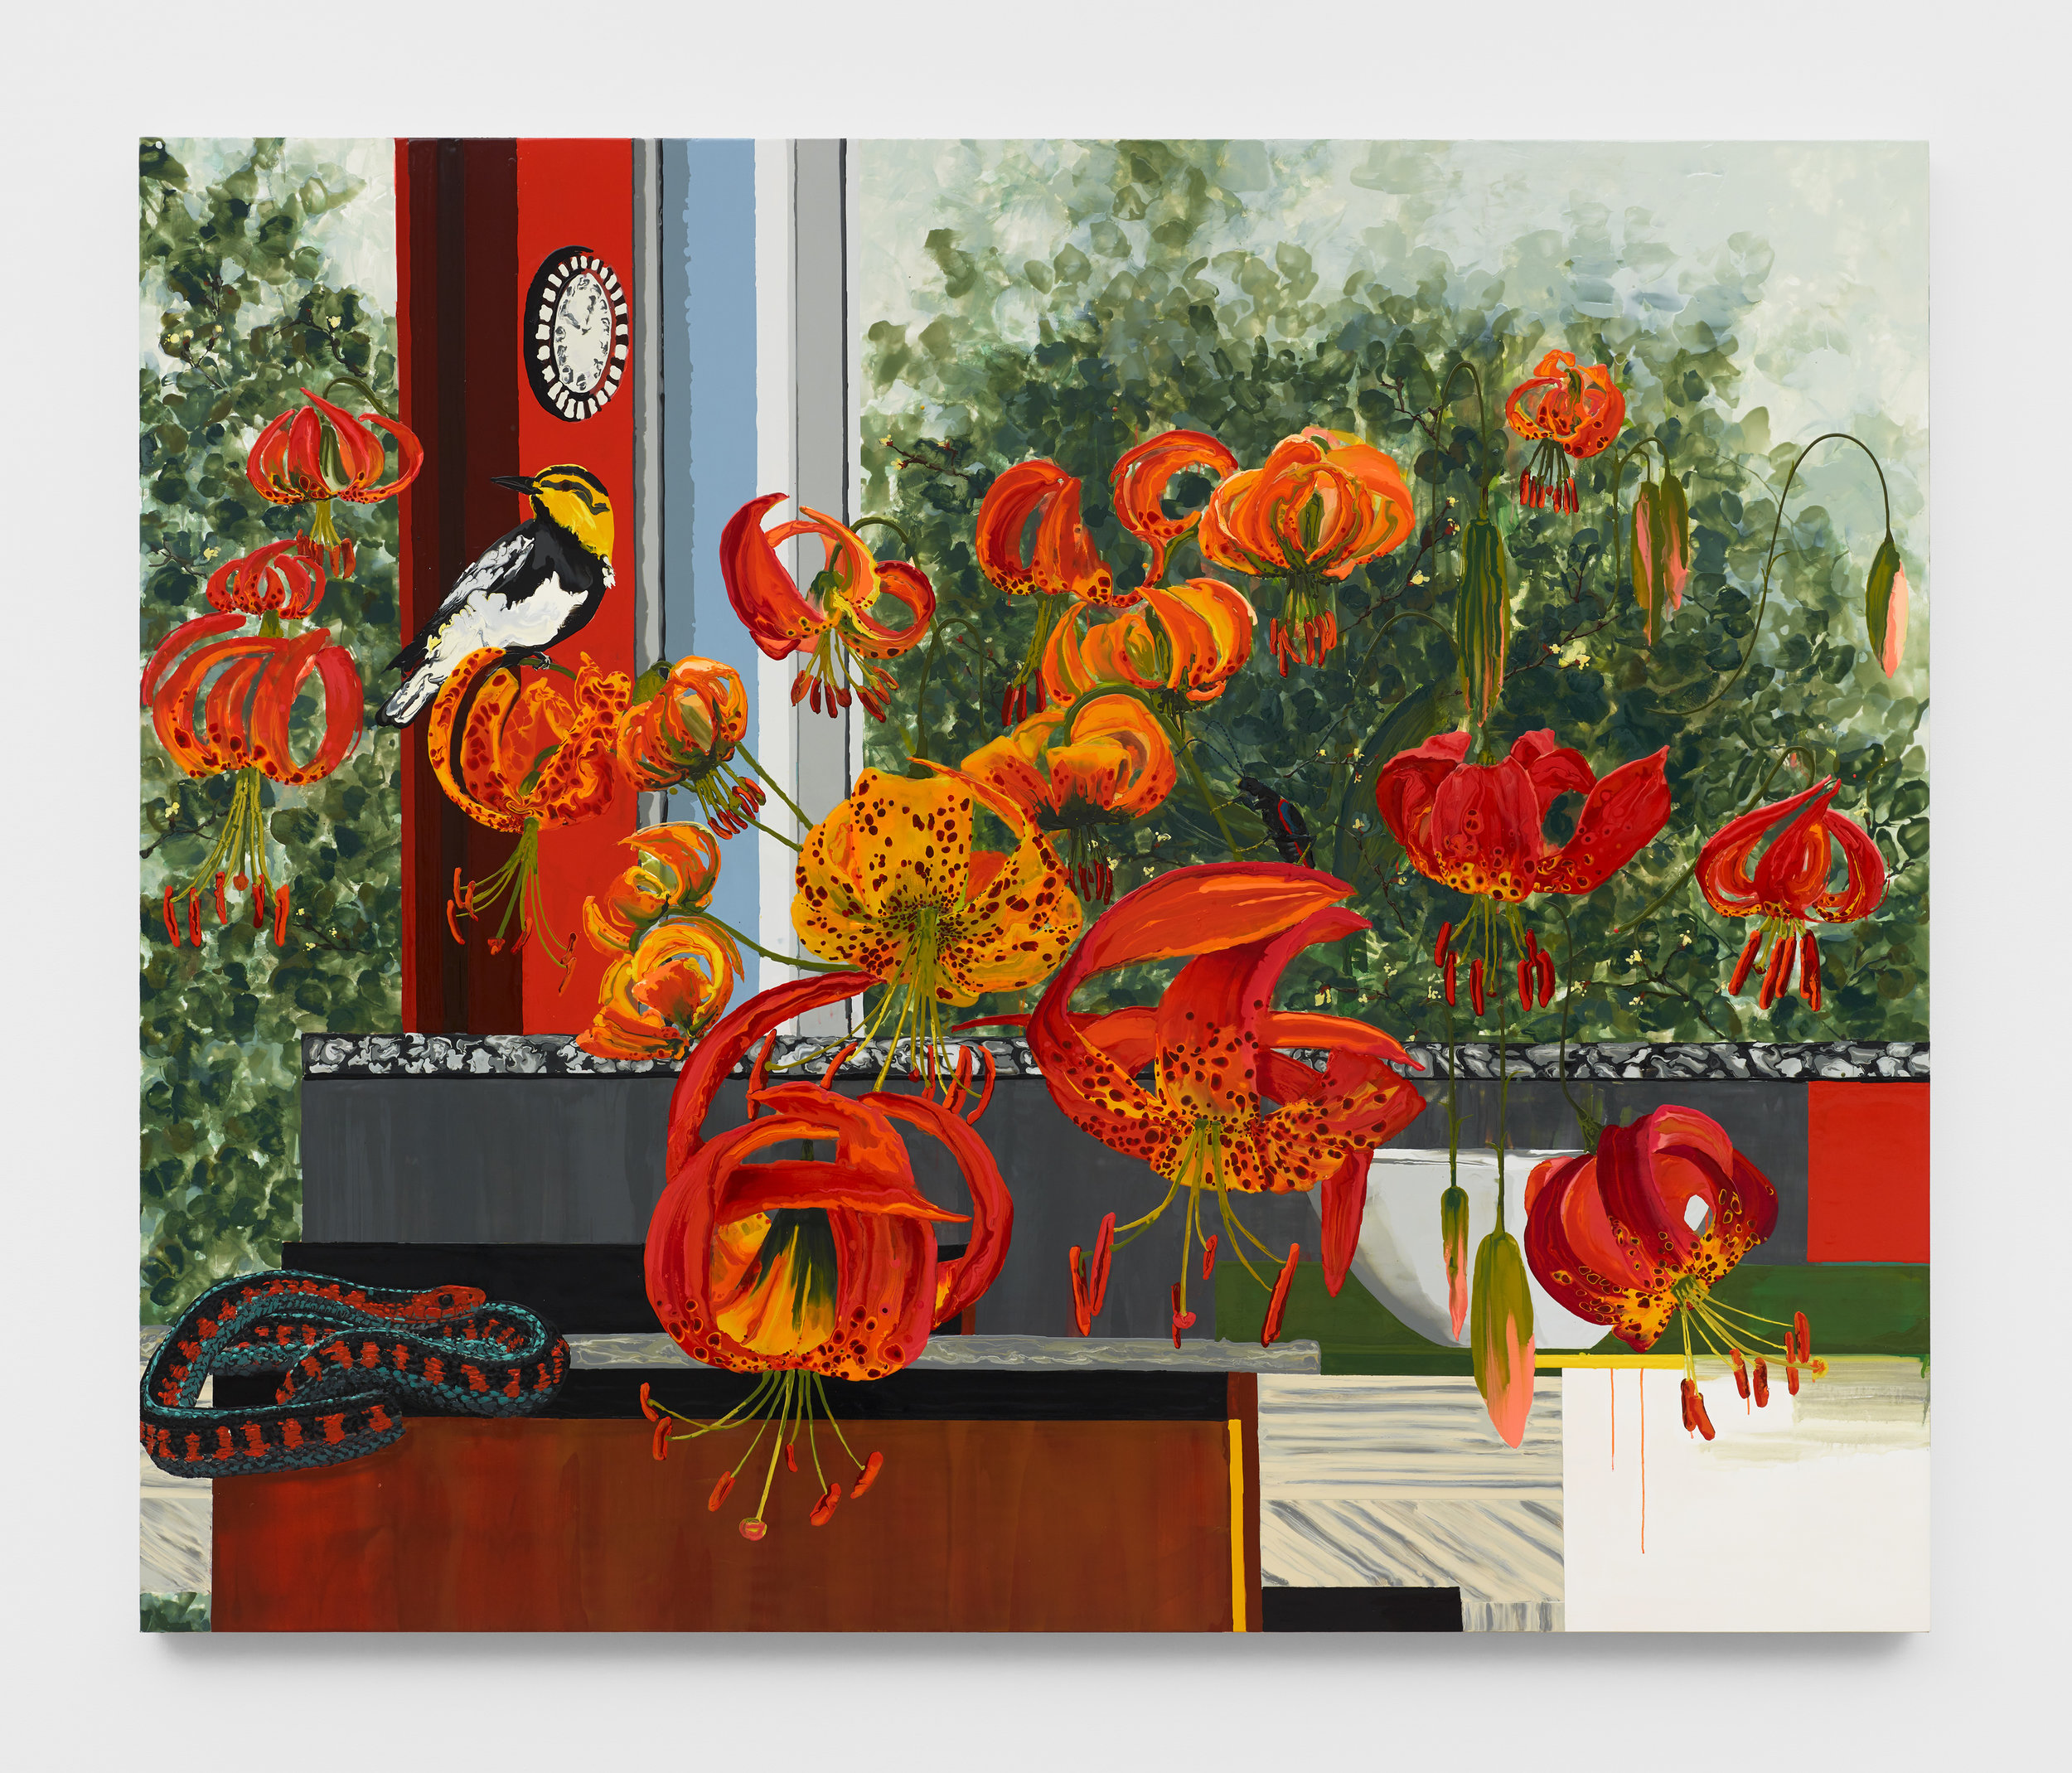 Kirsten Everberg, Western Lilies, 2019, Oil and enamel on canvas mounted on wood panel, 72 x 60 inches